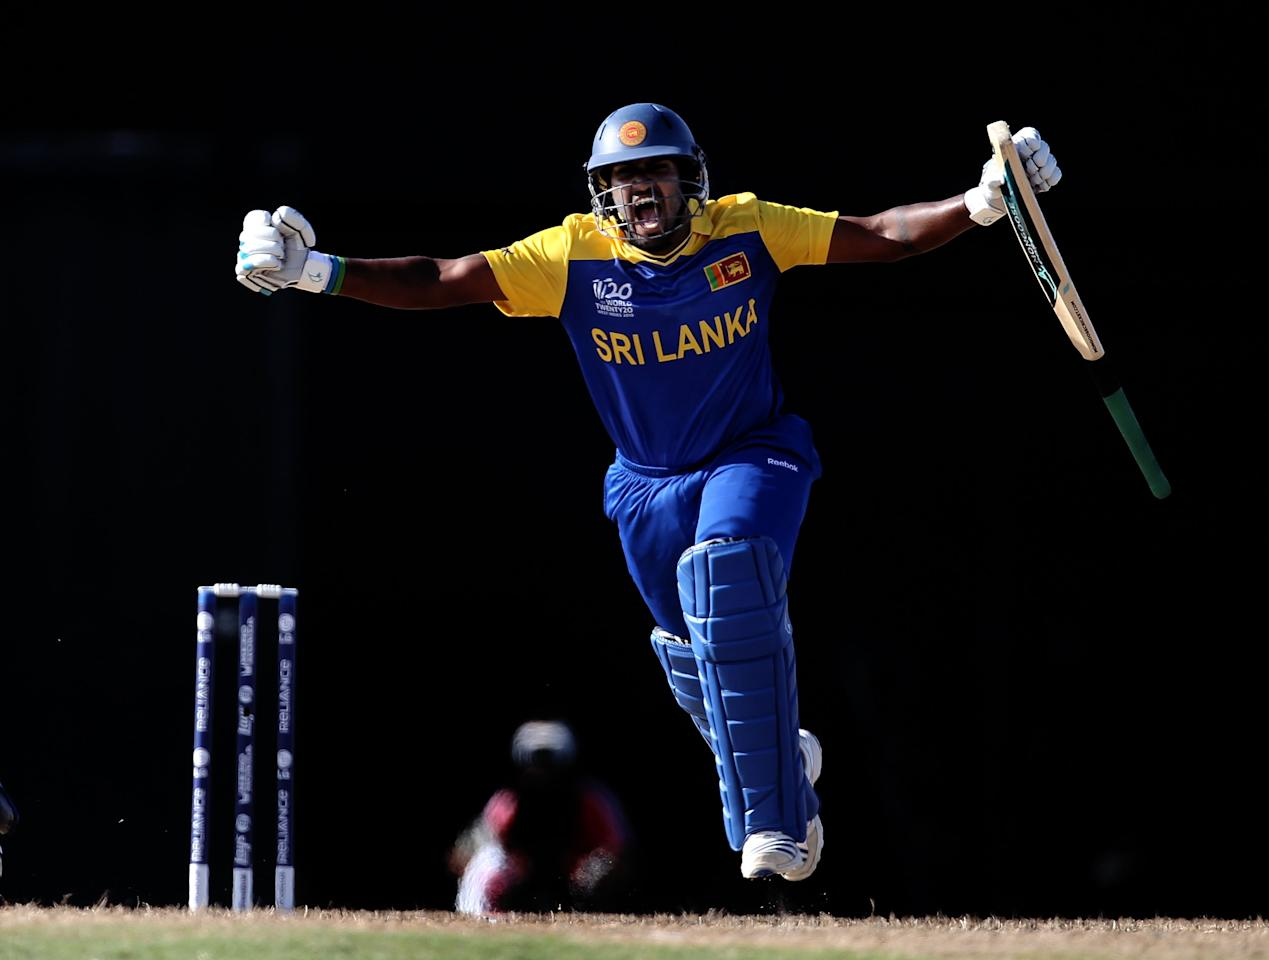 GROS ISLET, SAINT LUCIA - MAY 11:  Chamara Kapugedera of Sri Lanka celebrates after hitting the winning runs during the ICC World Twenty20 Super Eight match between India and Sri Lanka at the Beausejour Cricket Ground on May 11, 2010 in Gros Islet, Saint Lucia.  (Photo by Clive Rose/Getty Images)